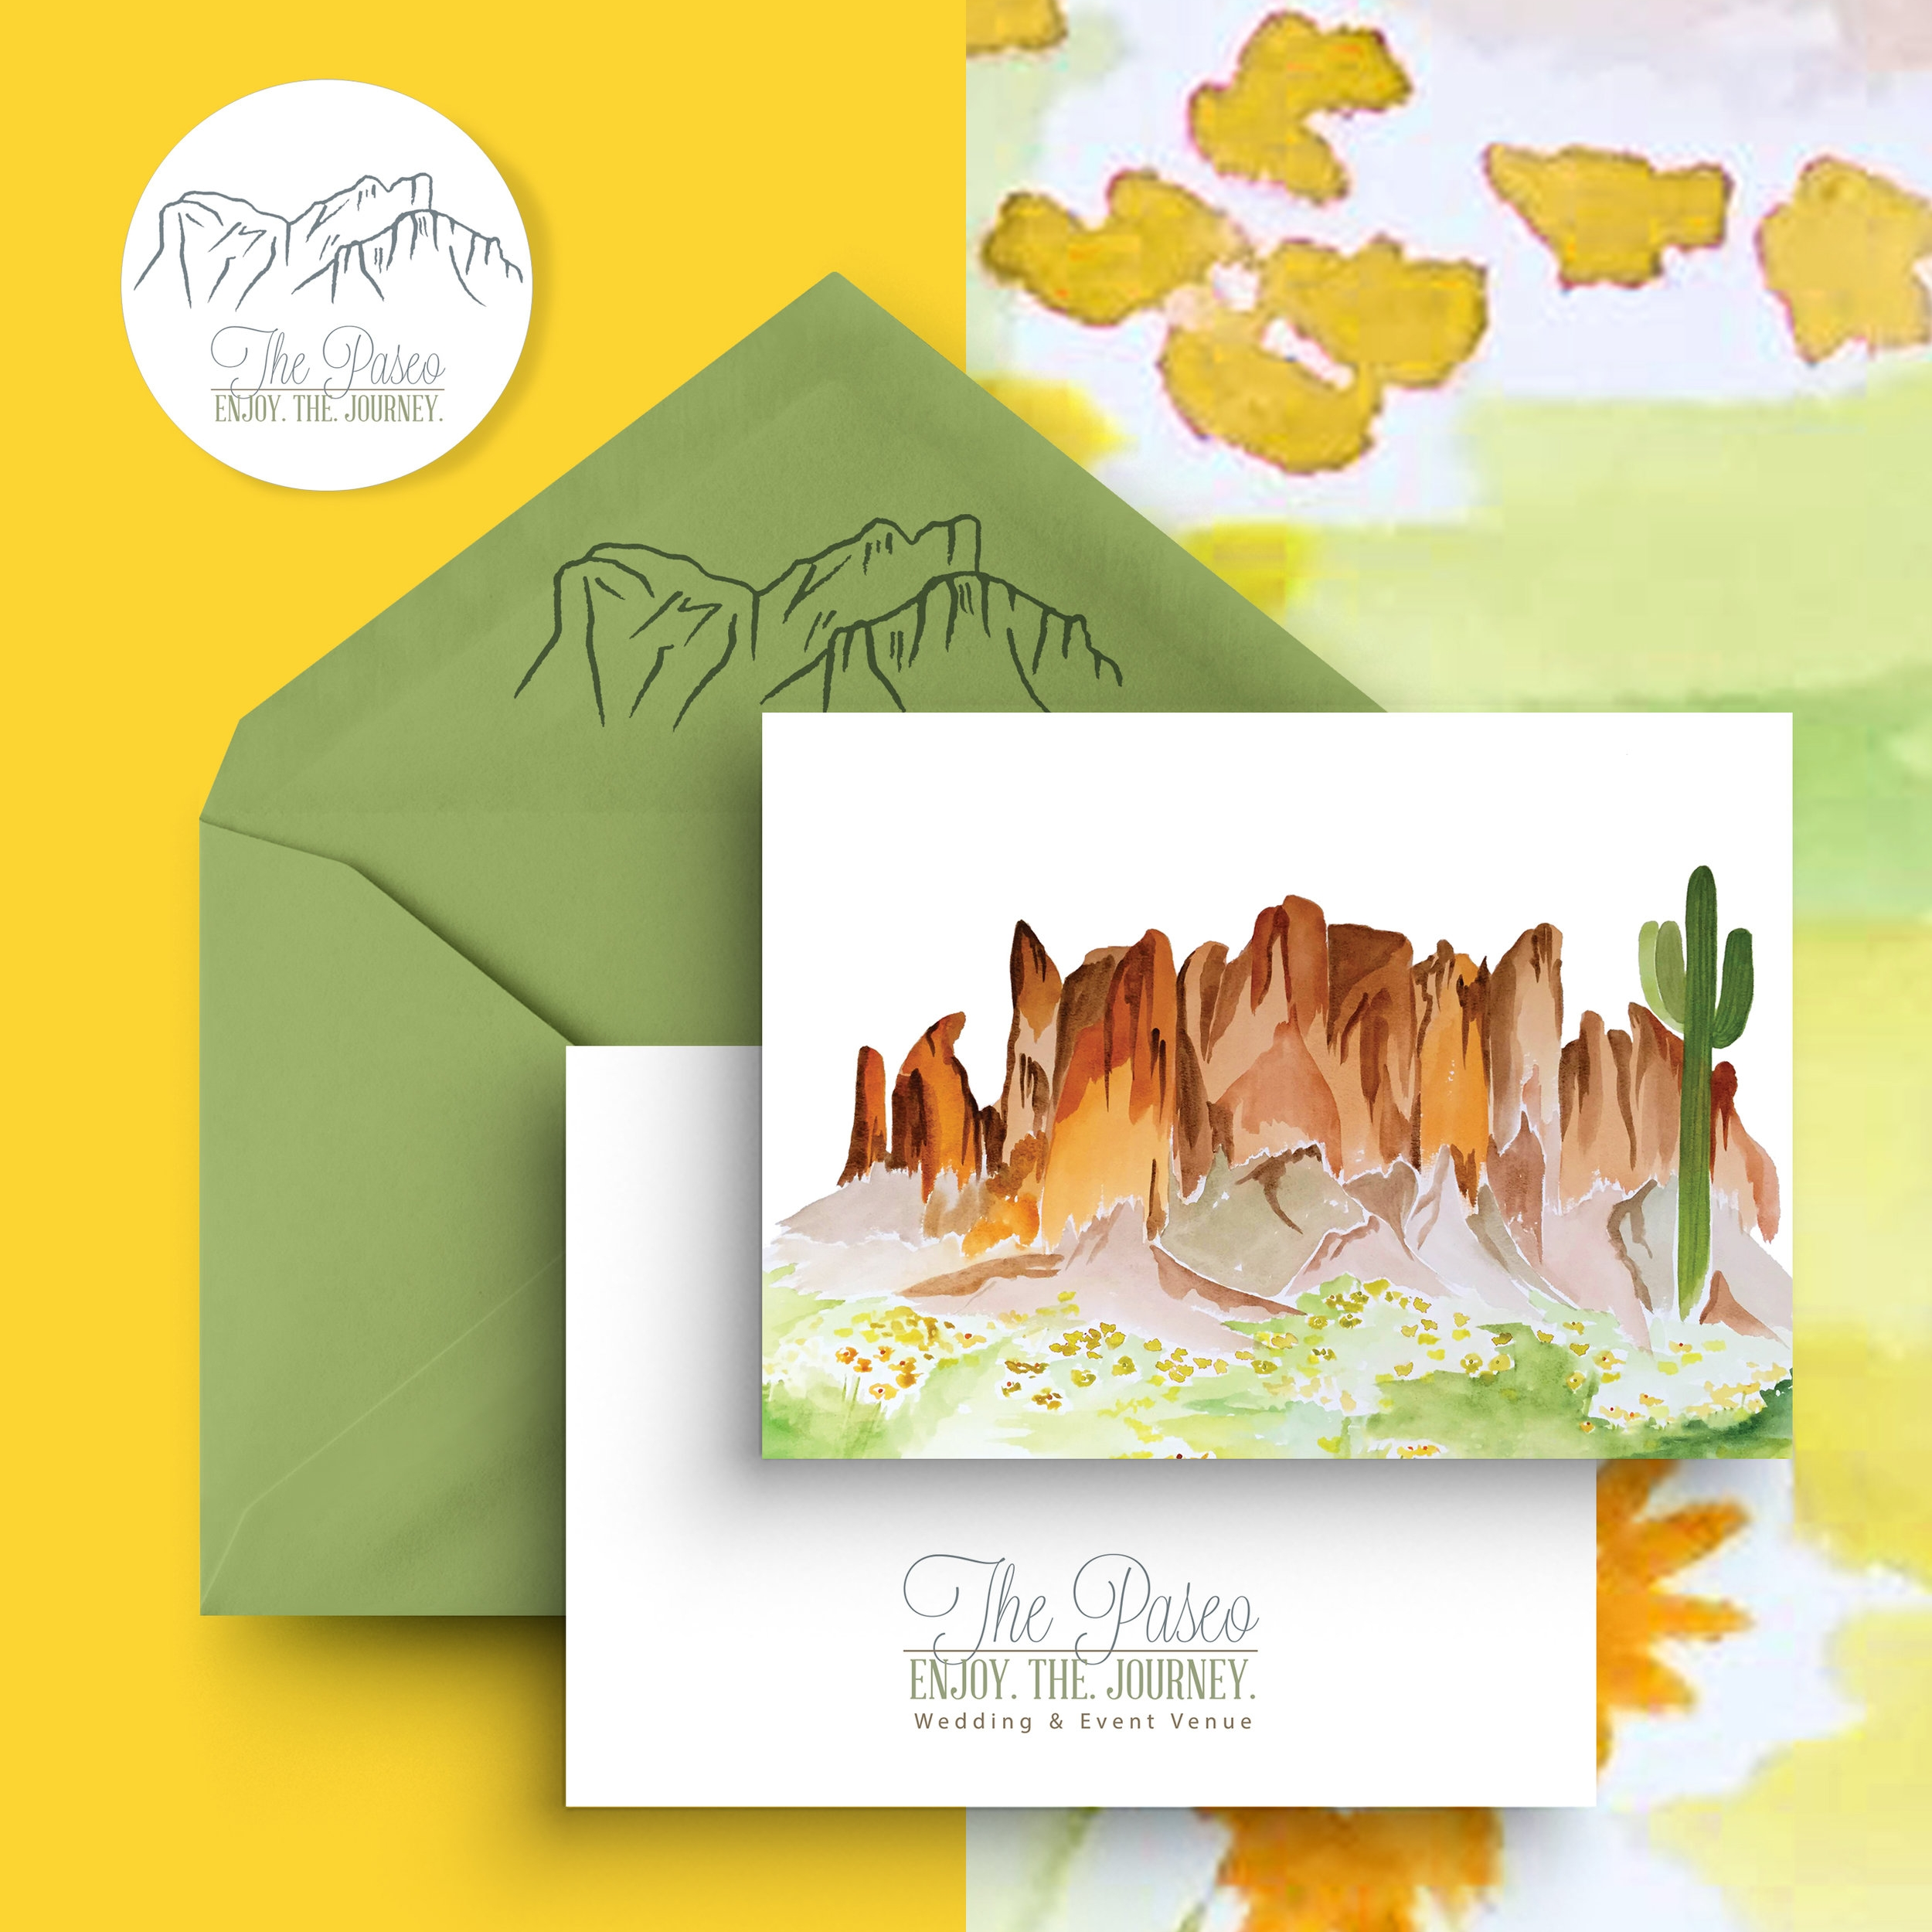 The Paseo stationery design.jpg